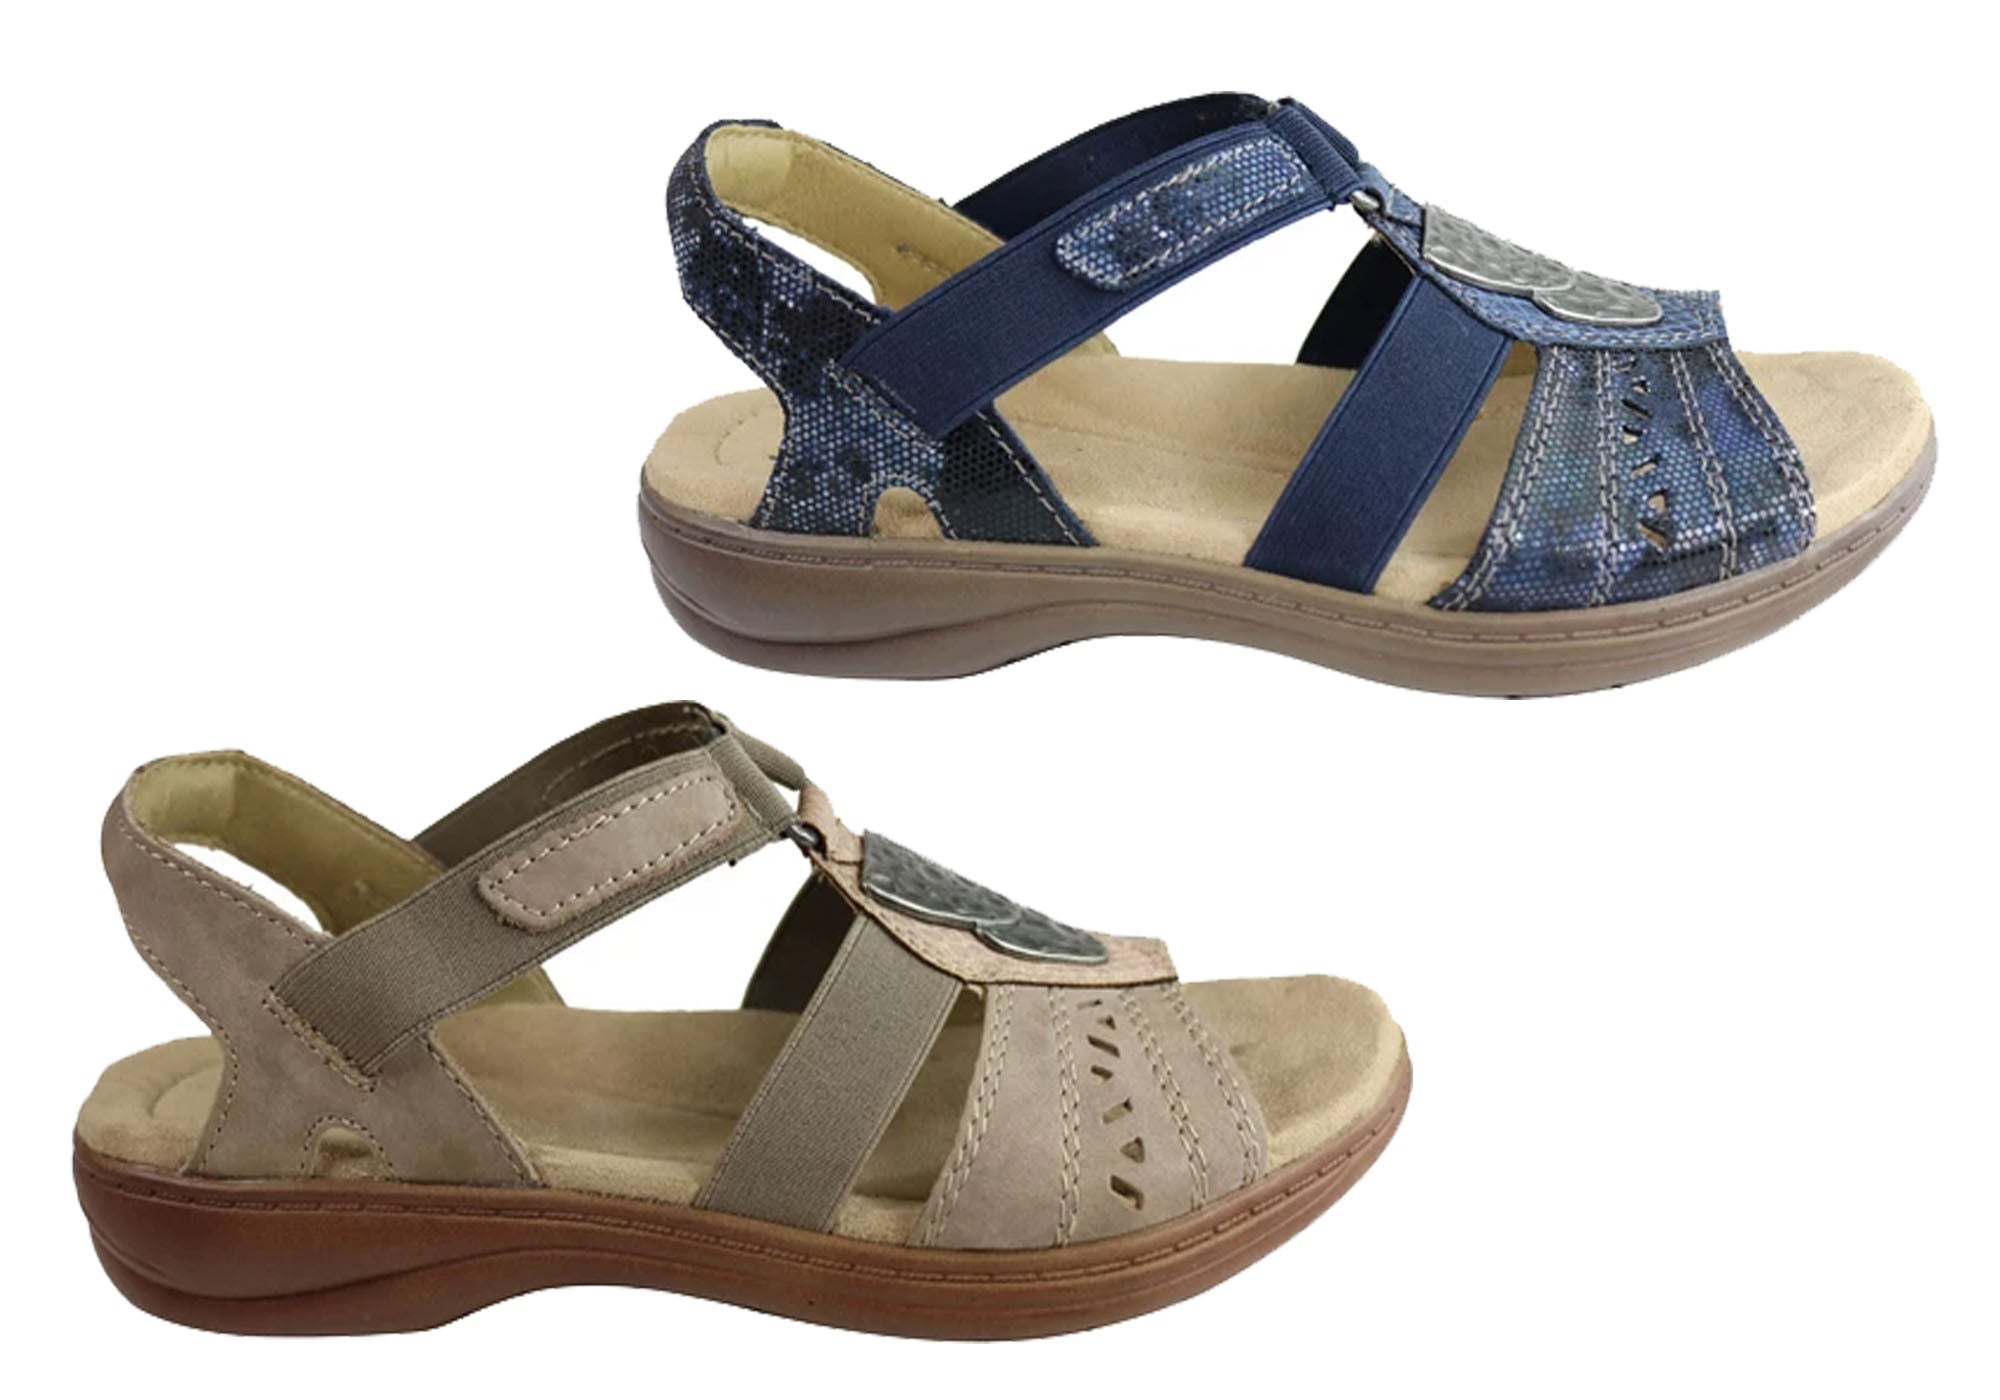 NEW PLANET SHOES TATIANA WOMENS COMFORTABLE LOW HEEL WEDGE SANDALS